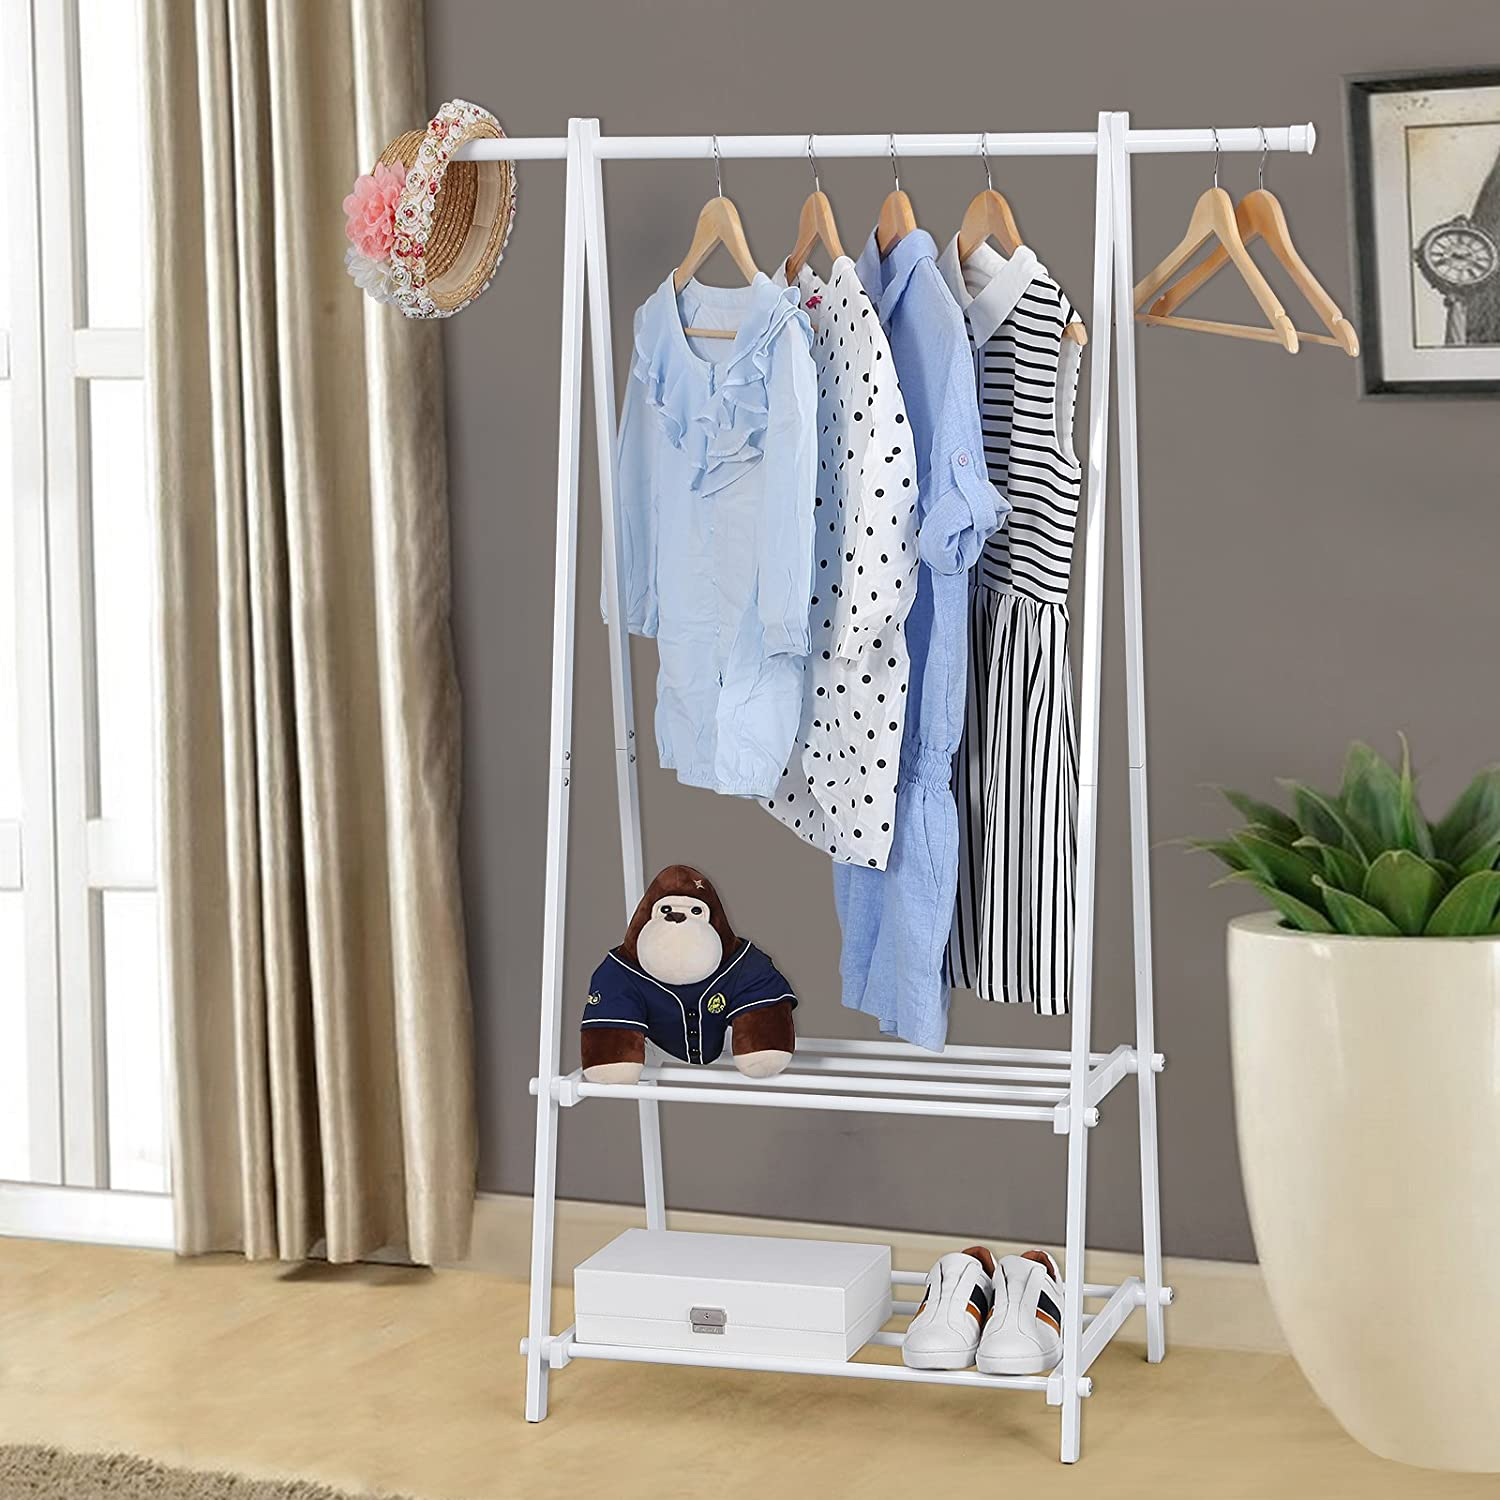 clothes willy rack drying line and laundry hanging products ceiling george wooden frank candid mounted